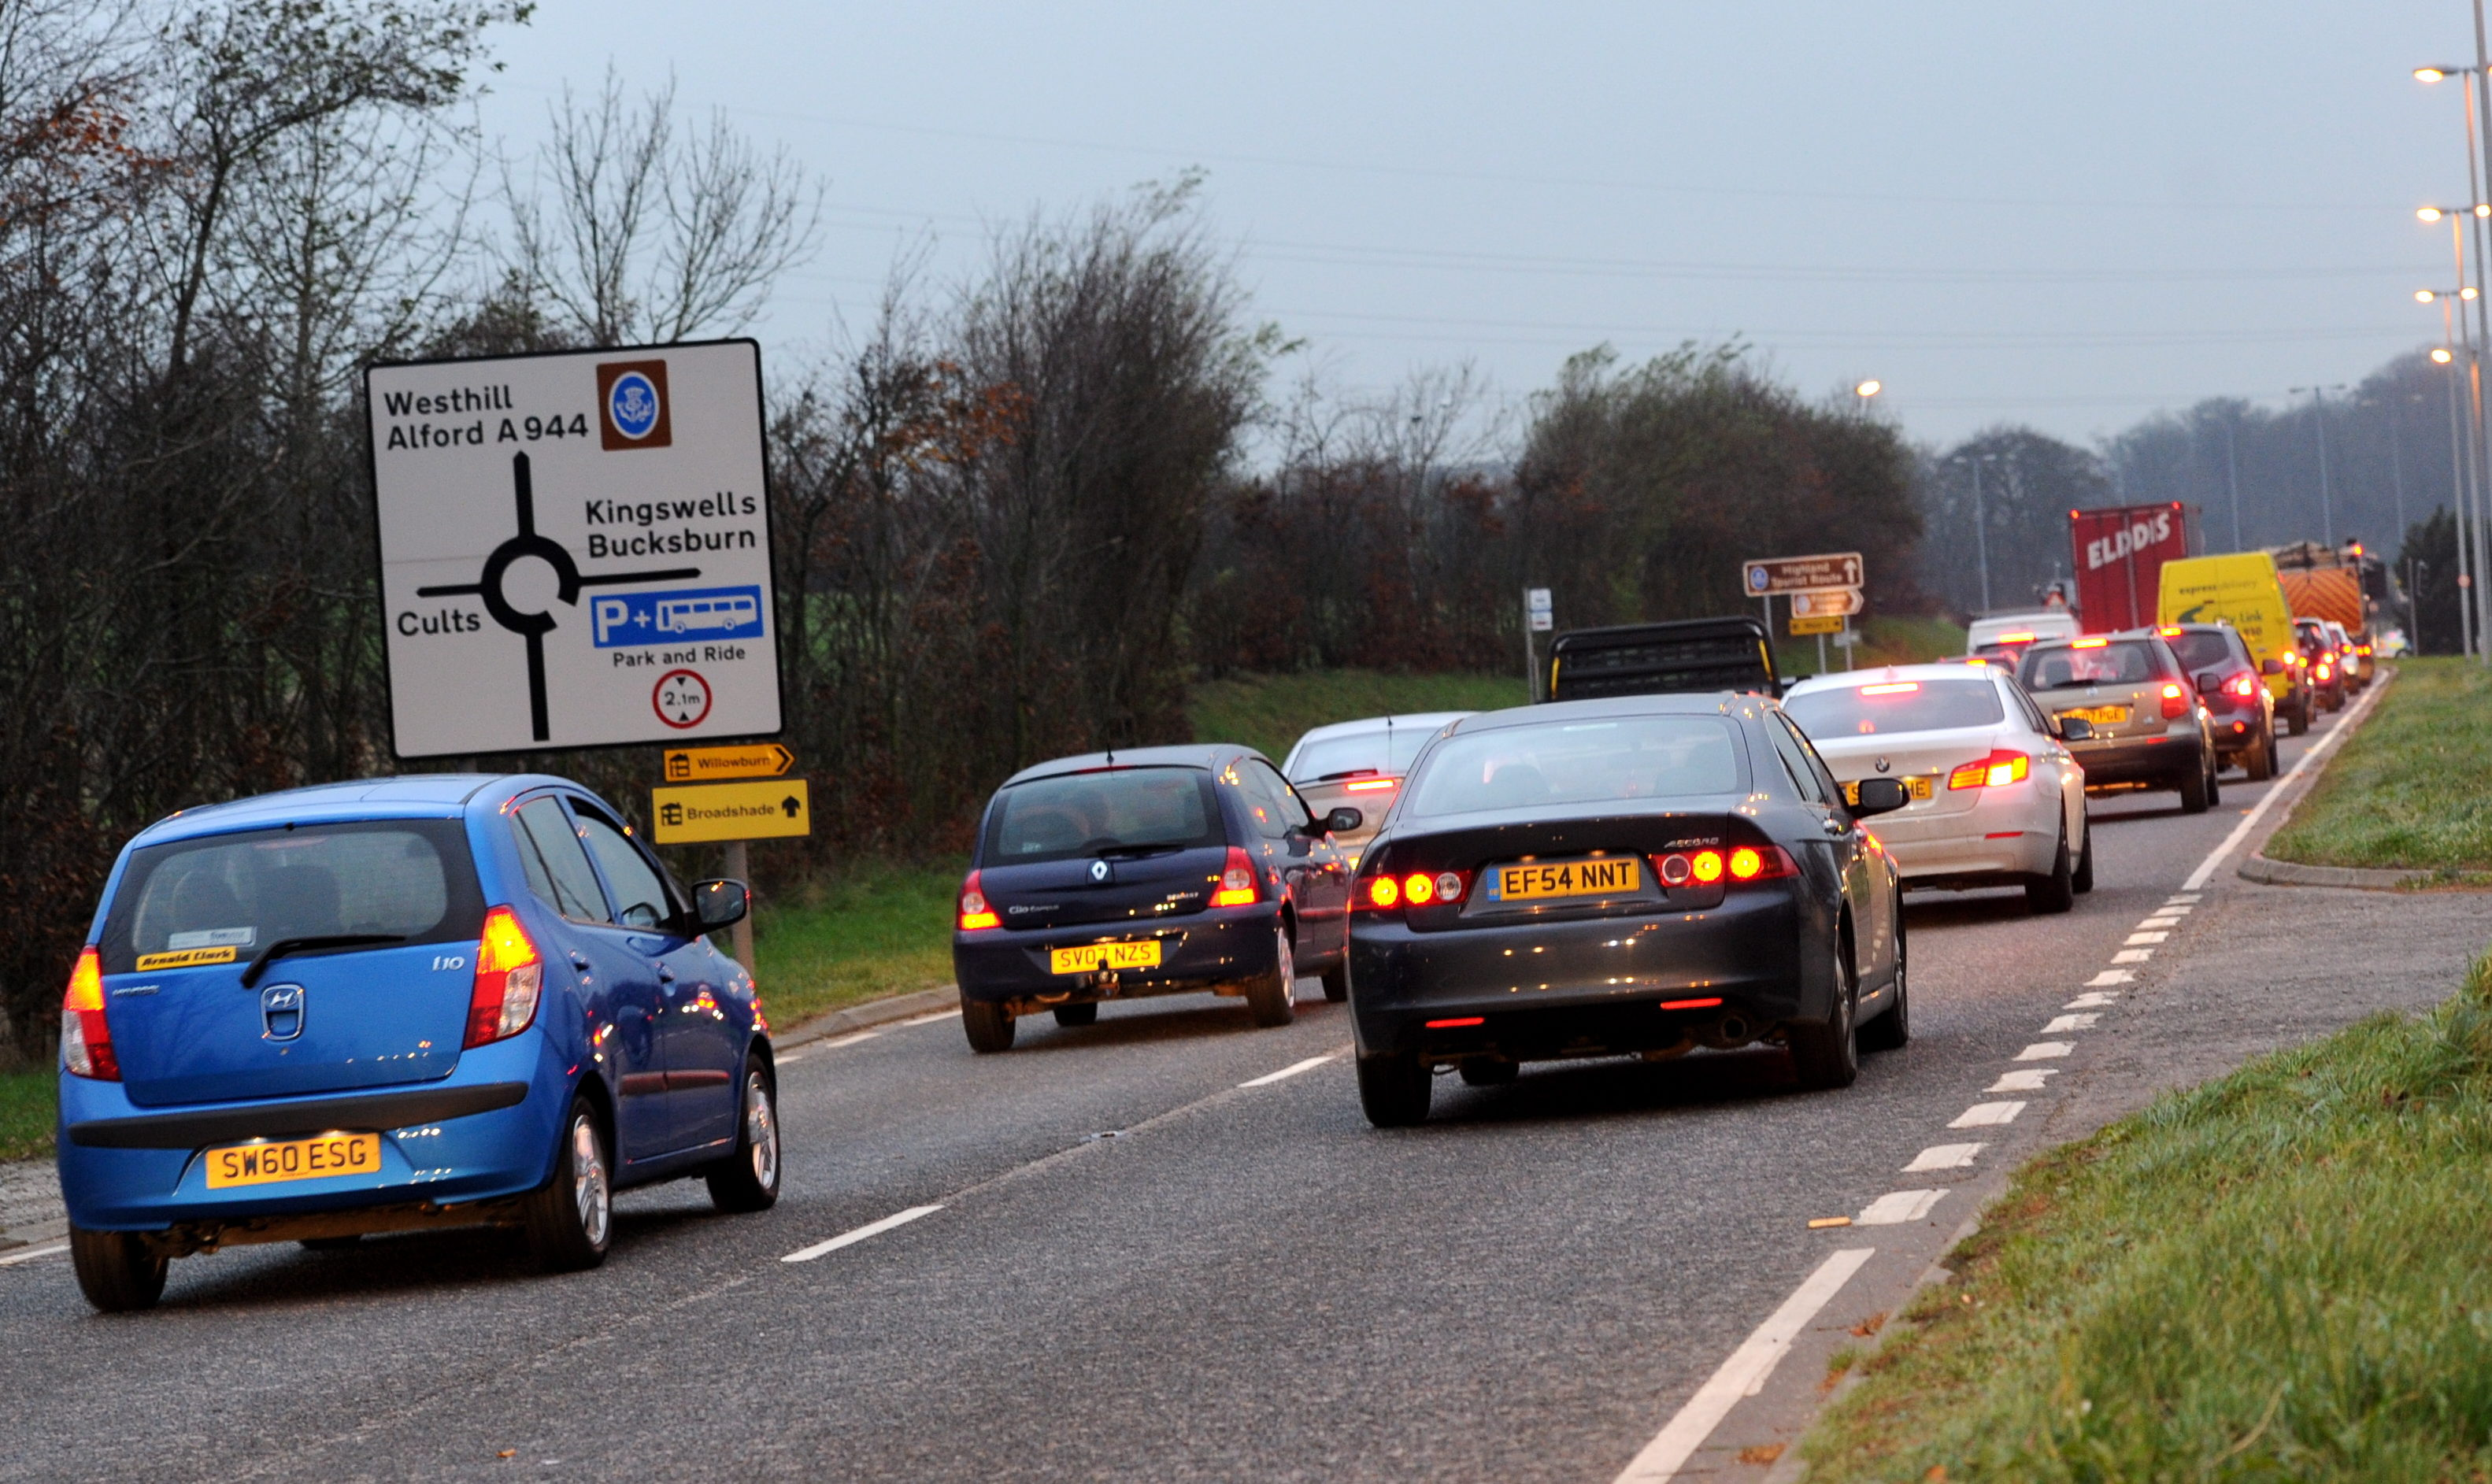 Drivers on approach to the roundabout at Kingswells